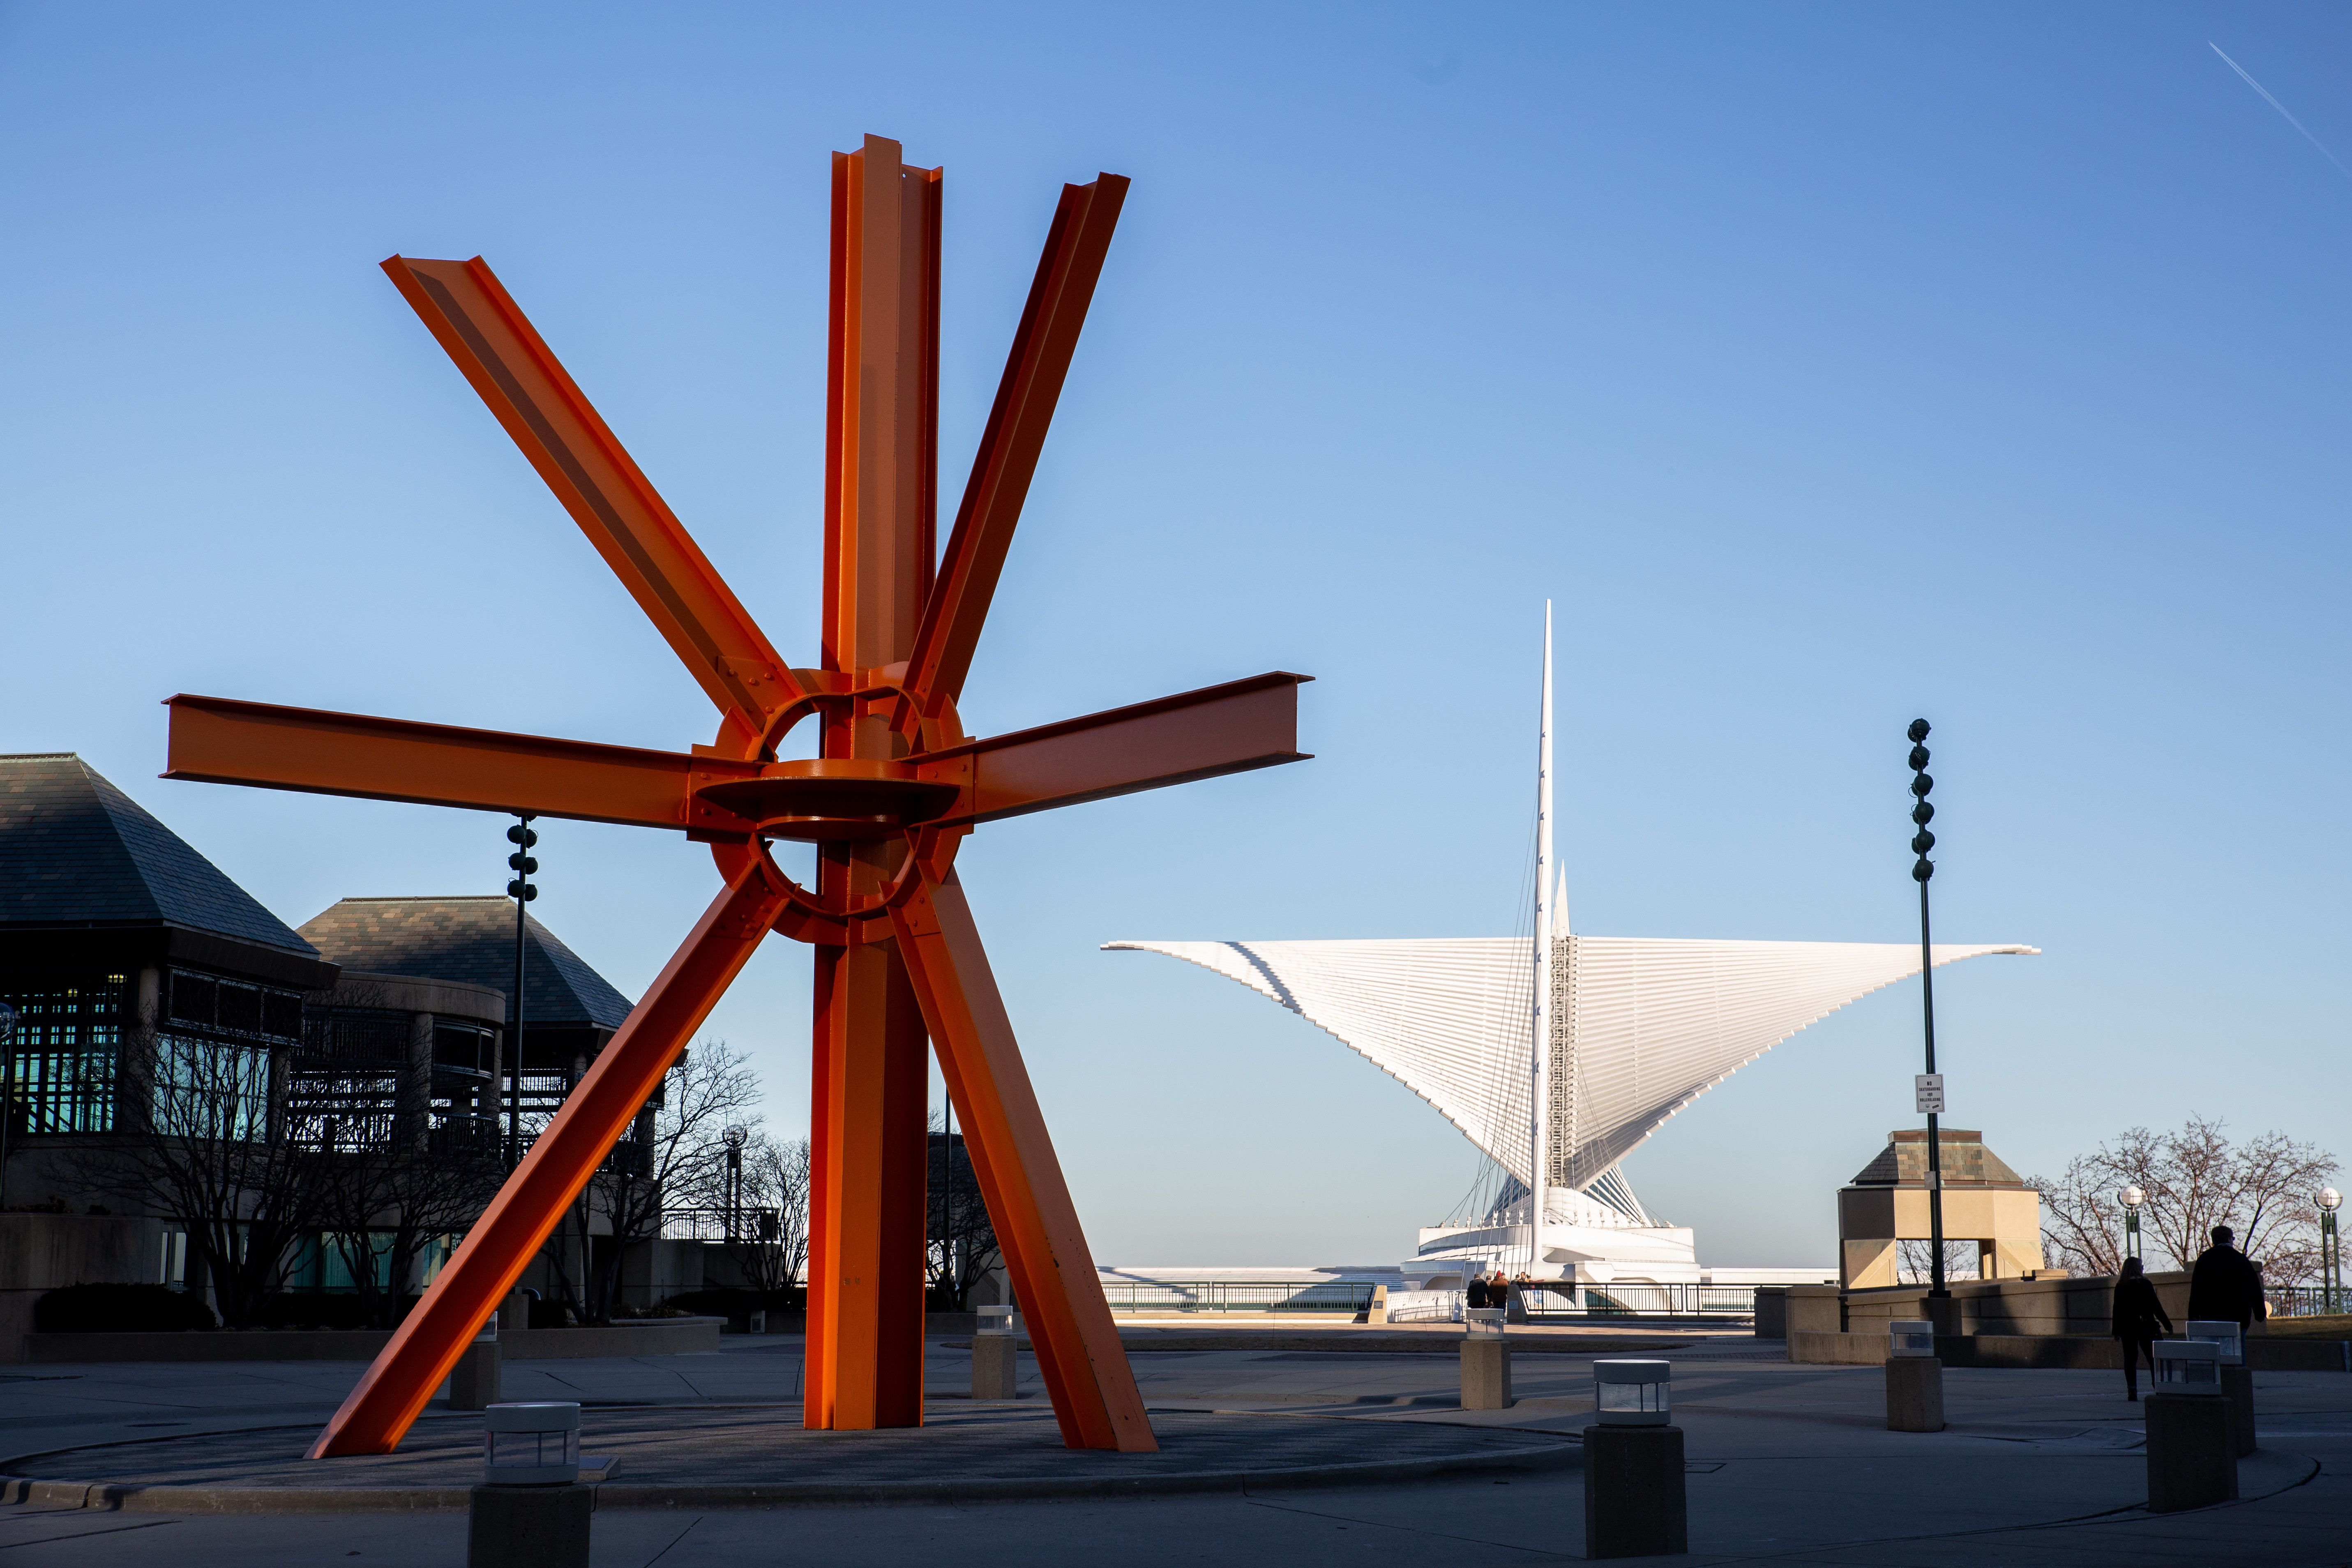 Exterior of the Milwaukee Museum of Art with a public sculpture out front.